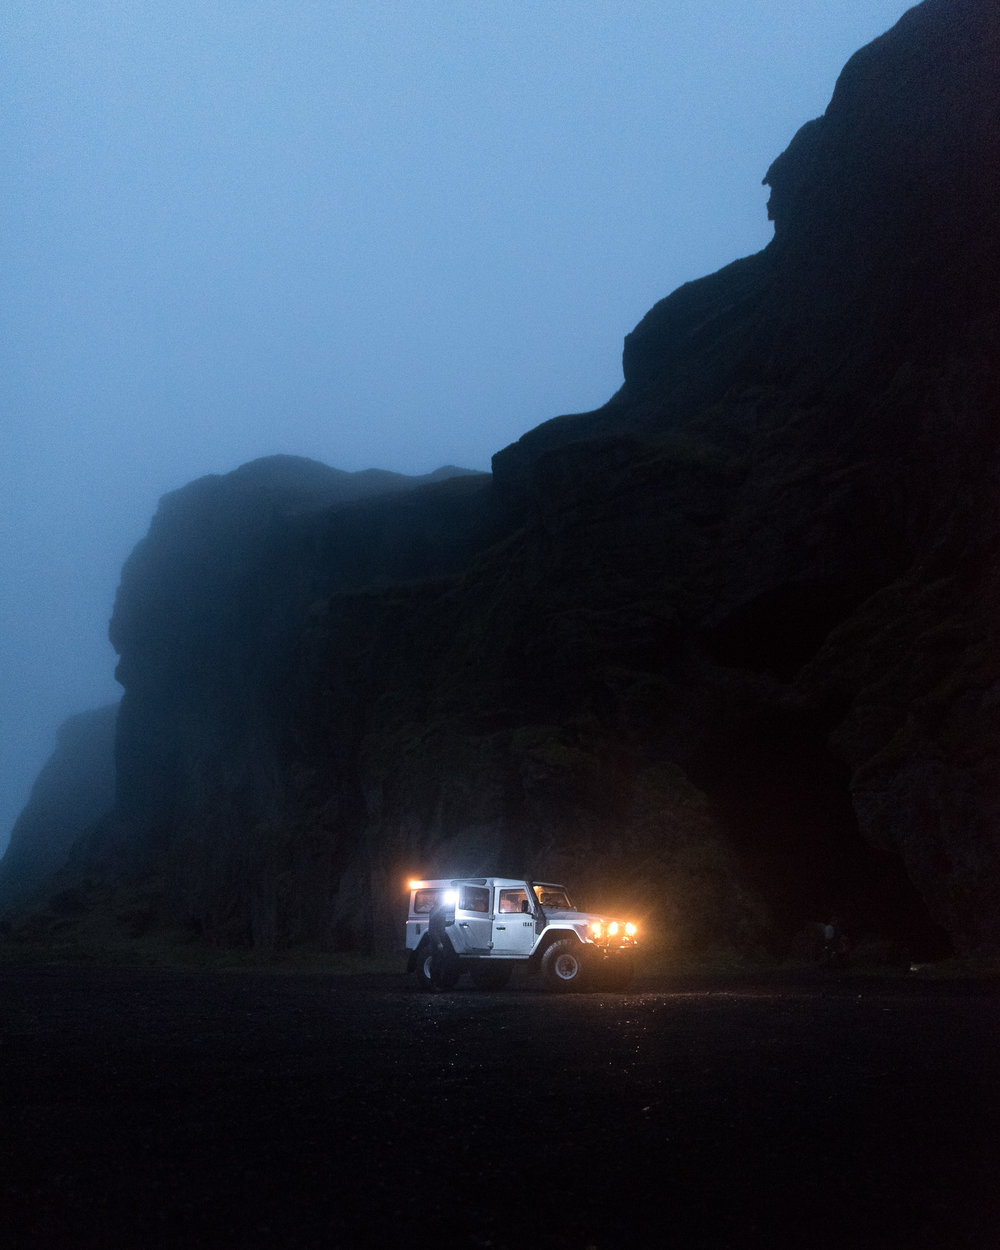 landrover in the foggy night